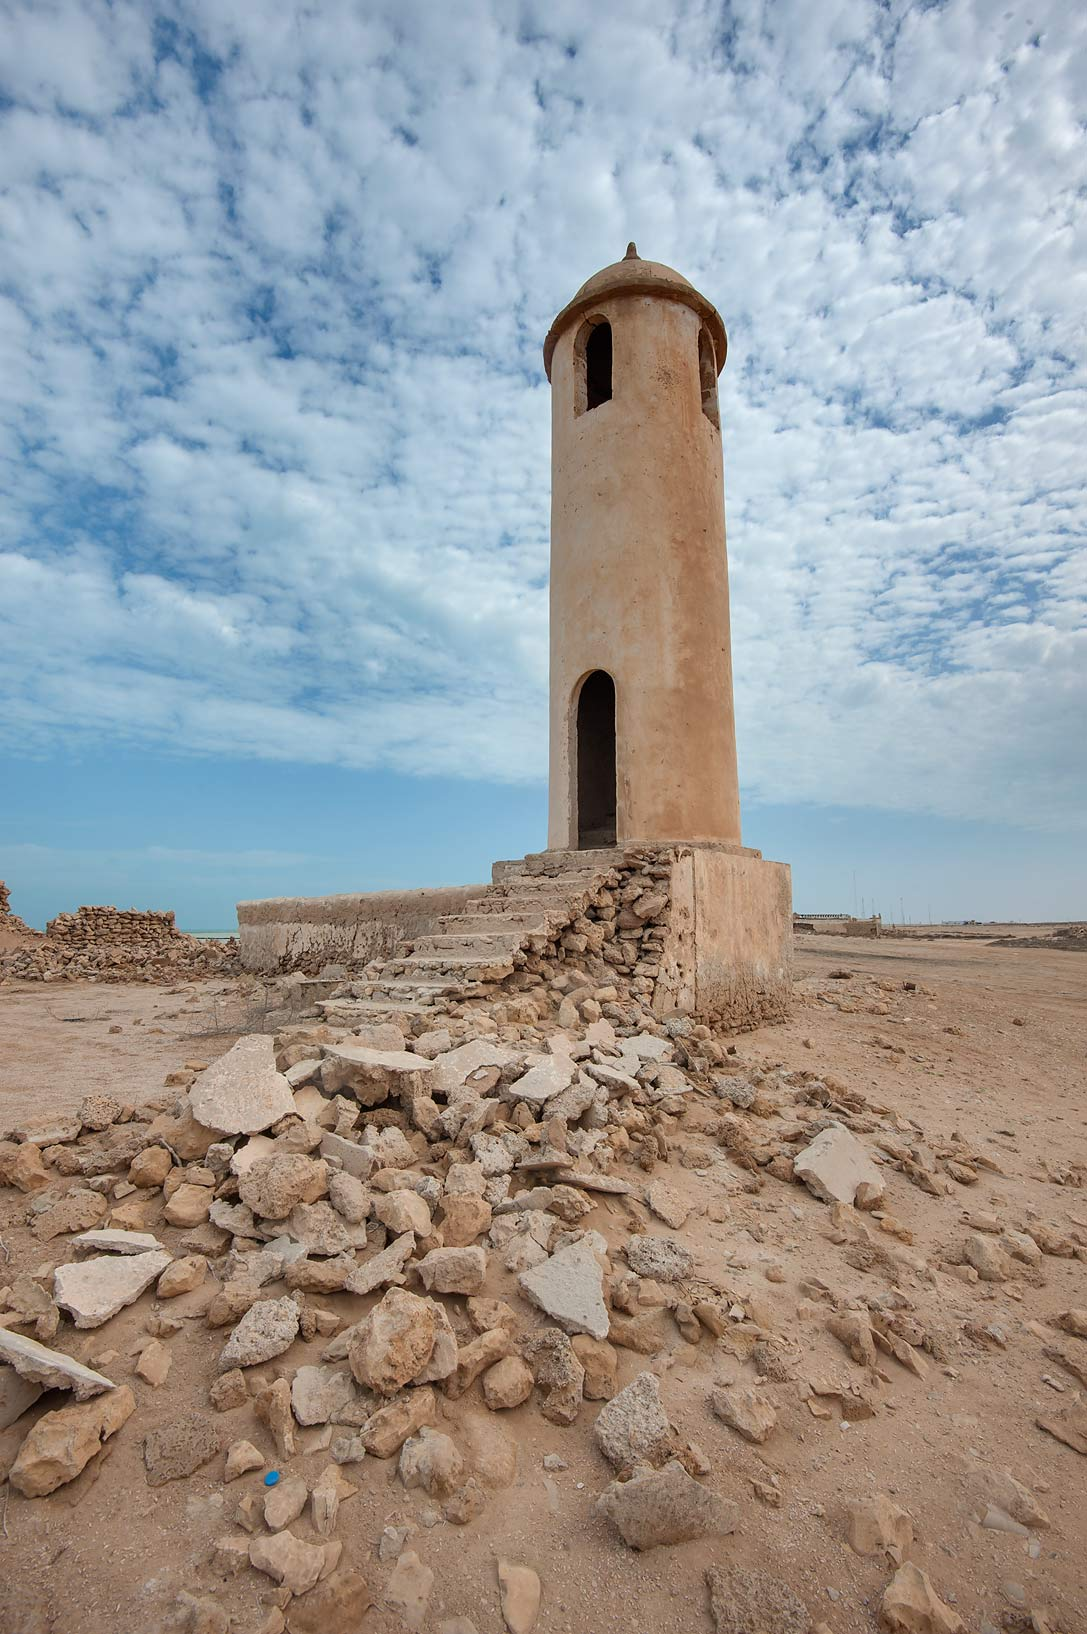 Mosque minaret in Al Areesh. Northern Qatar